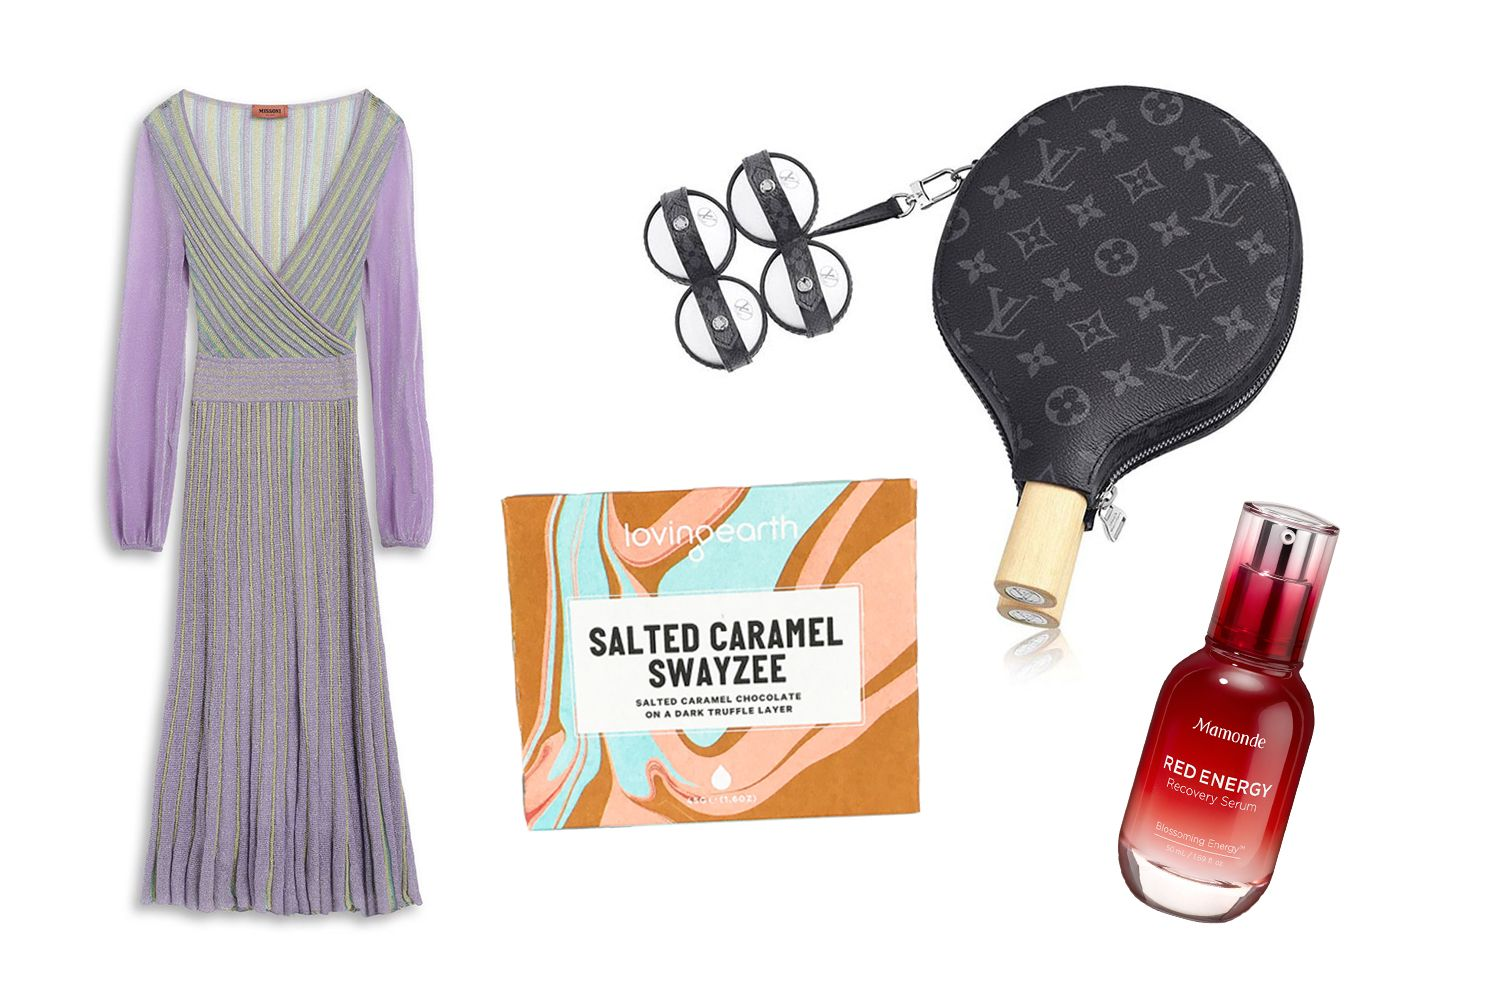 Editor's Picks: LV Ping Pong Set, Recovery Serums, Vegan Goodies And More